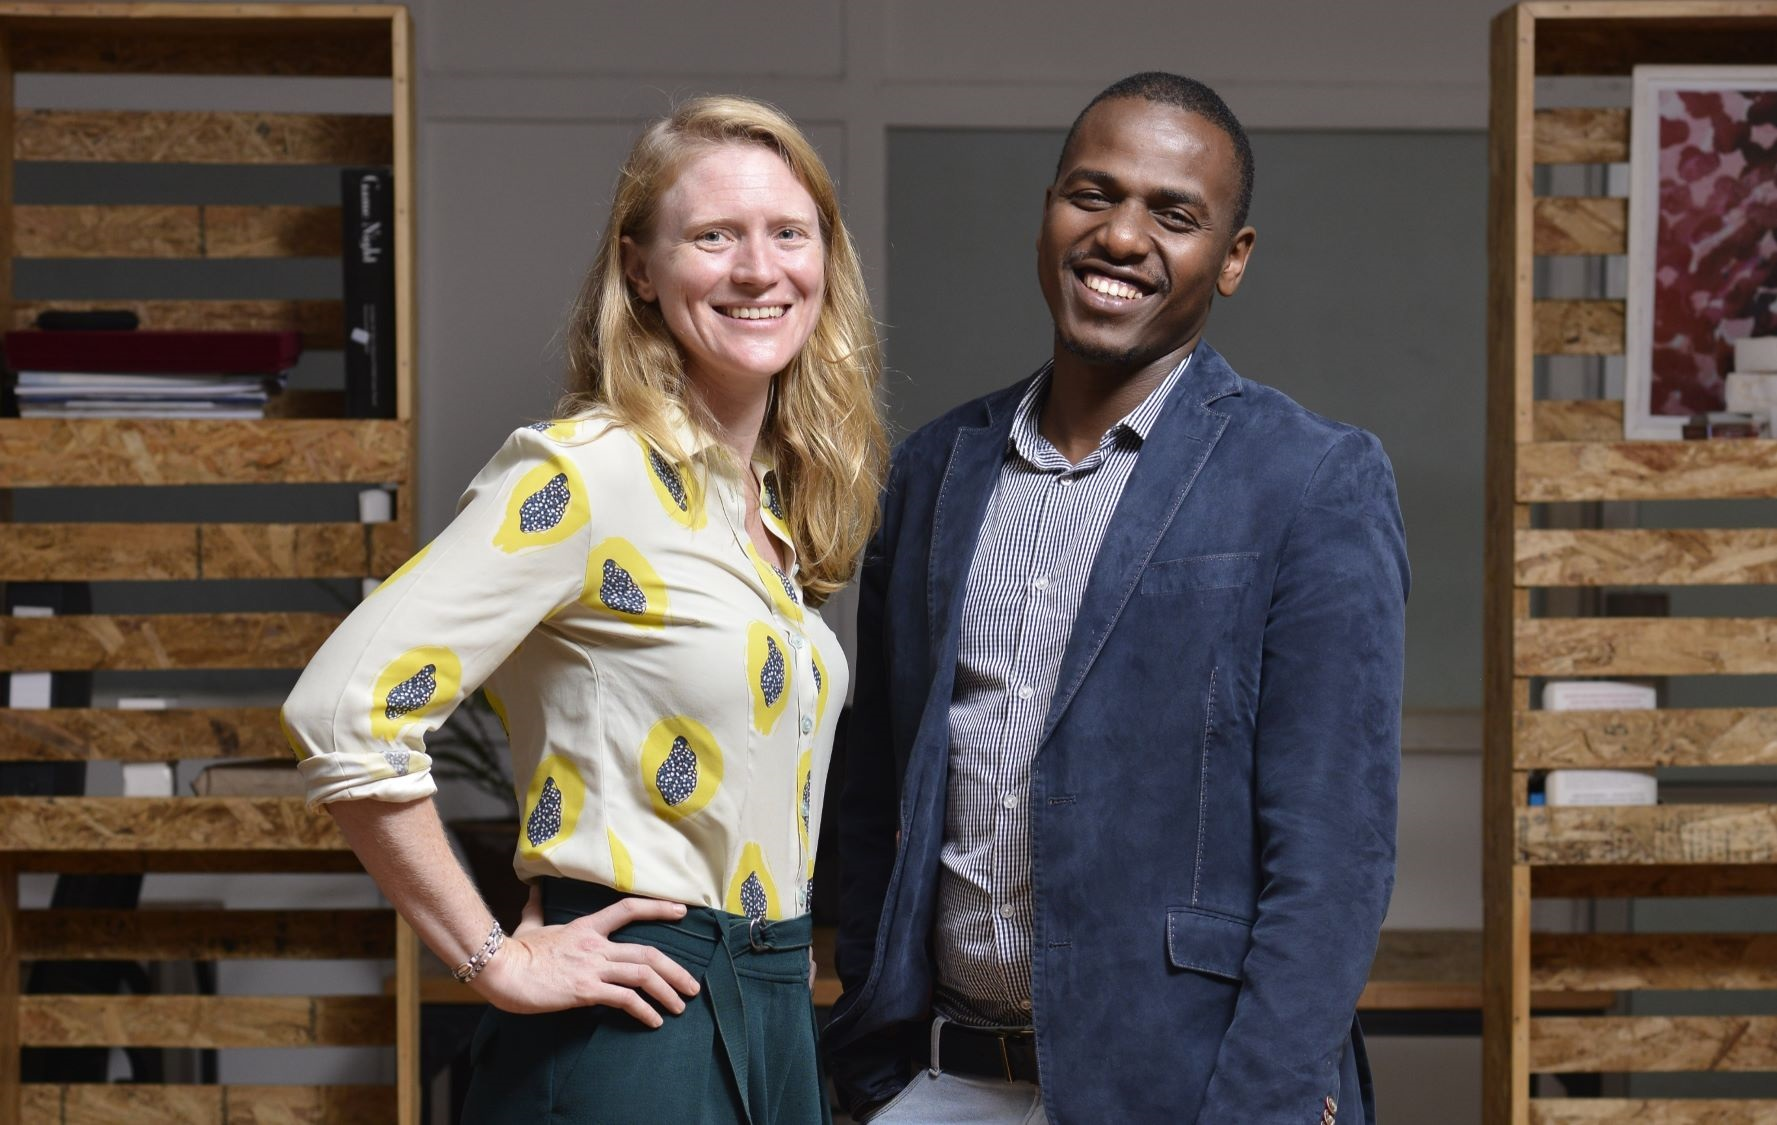 Pula Co-Founders and Co-CEOs, Rose Goslinga & Thomas Njeru. Pula provides agricultural insurance and digital products to help smallholder farmers manage climate risks, improve farming practices and increase their incomes. [ Photo / Courtesy ]